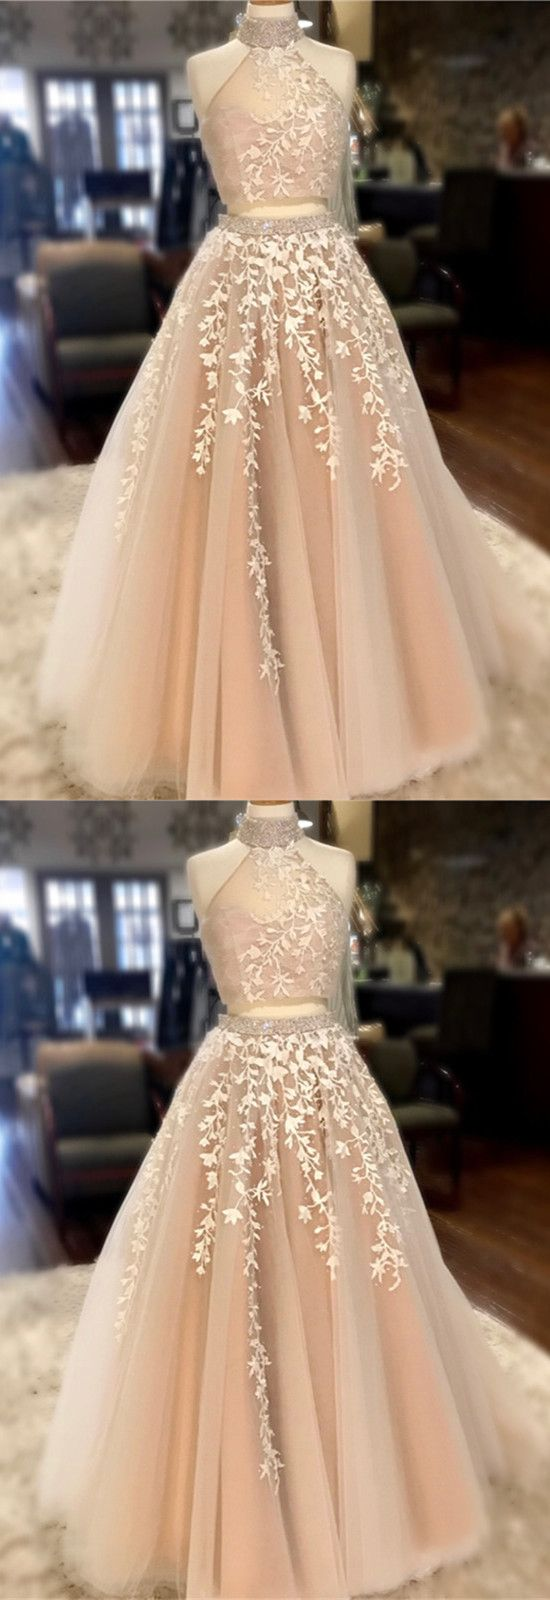 39abfb2e7a4 High Neck Open Back Tulle Prom Dresses Two Piece Quinceanera Dress Ball Gowns  Prom Dresses 2018